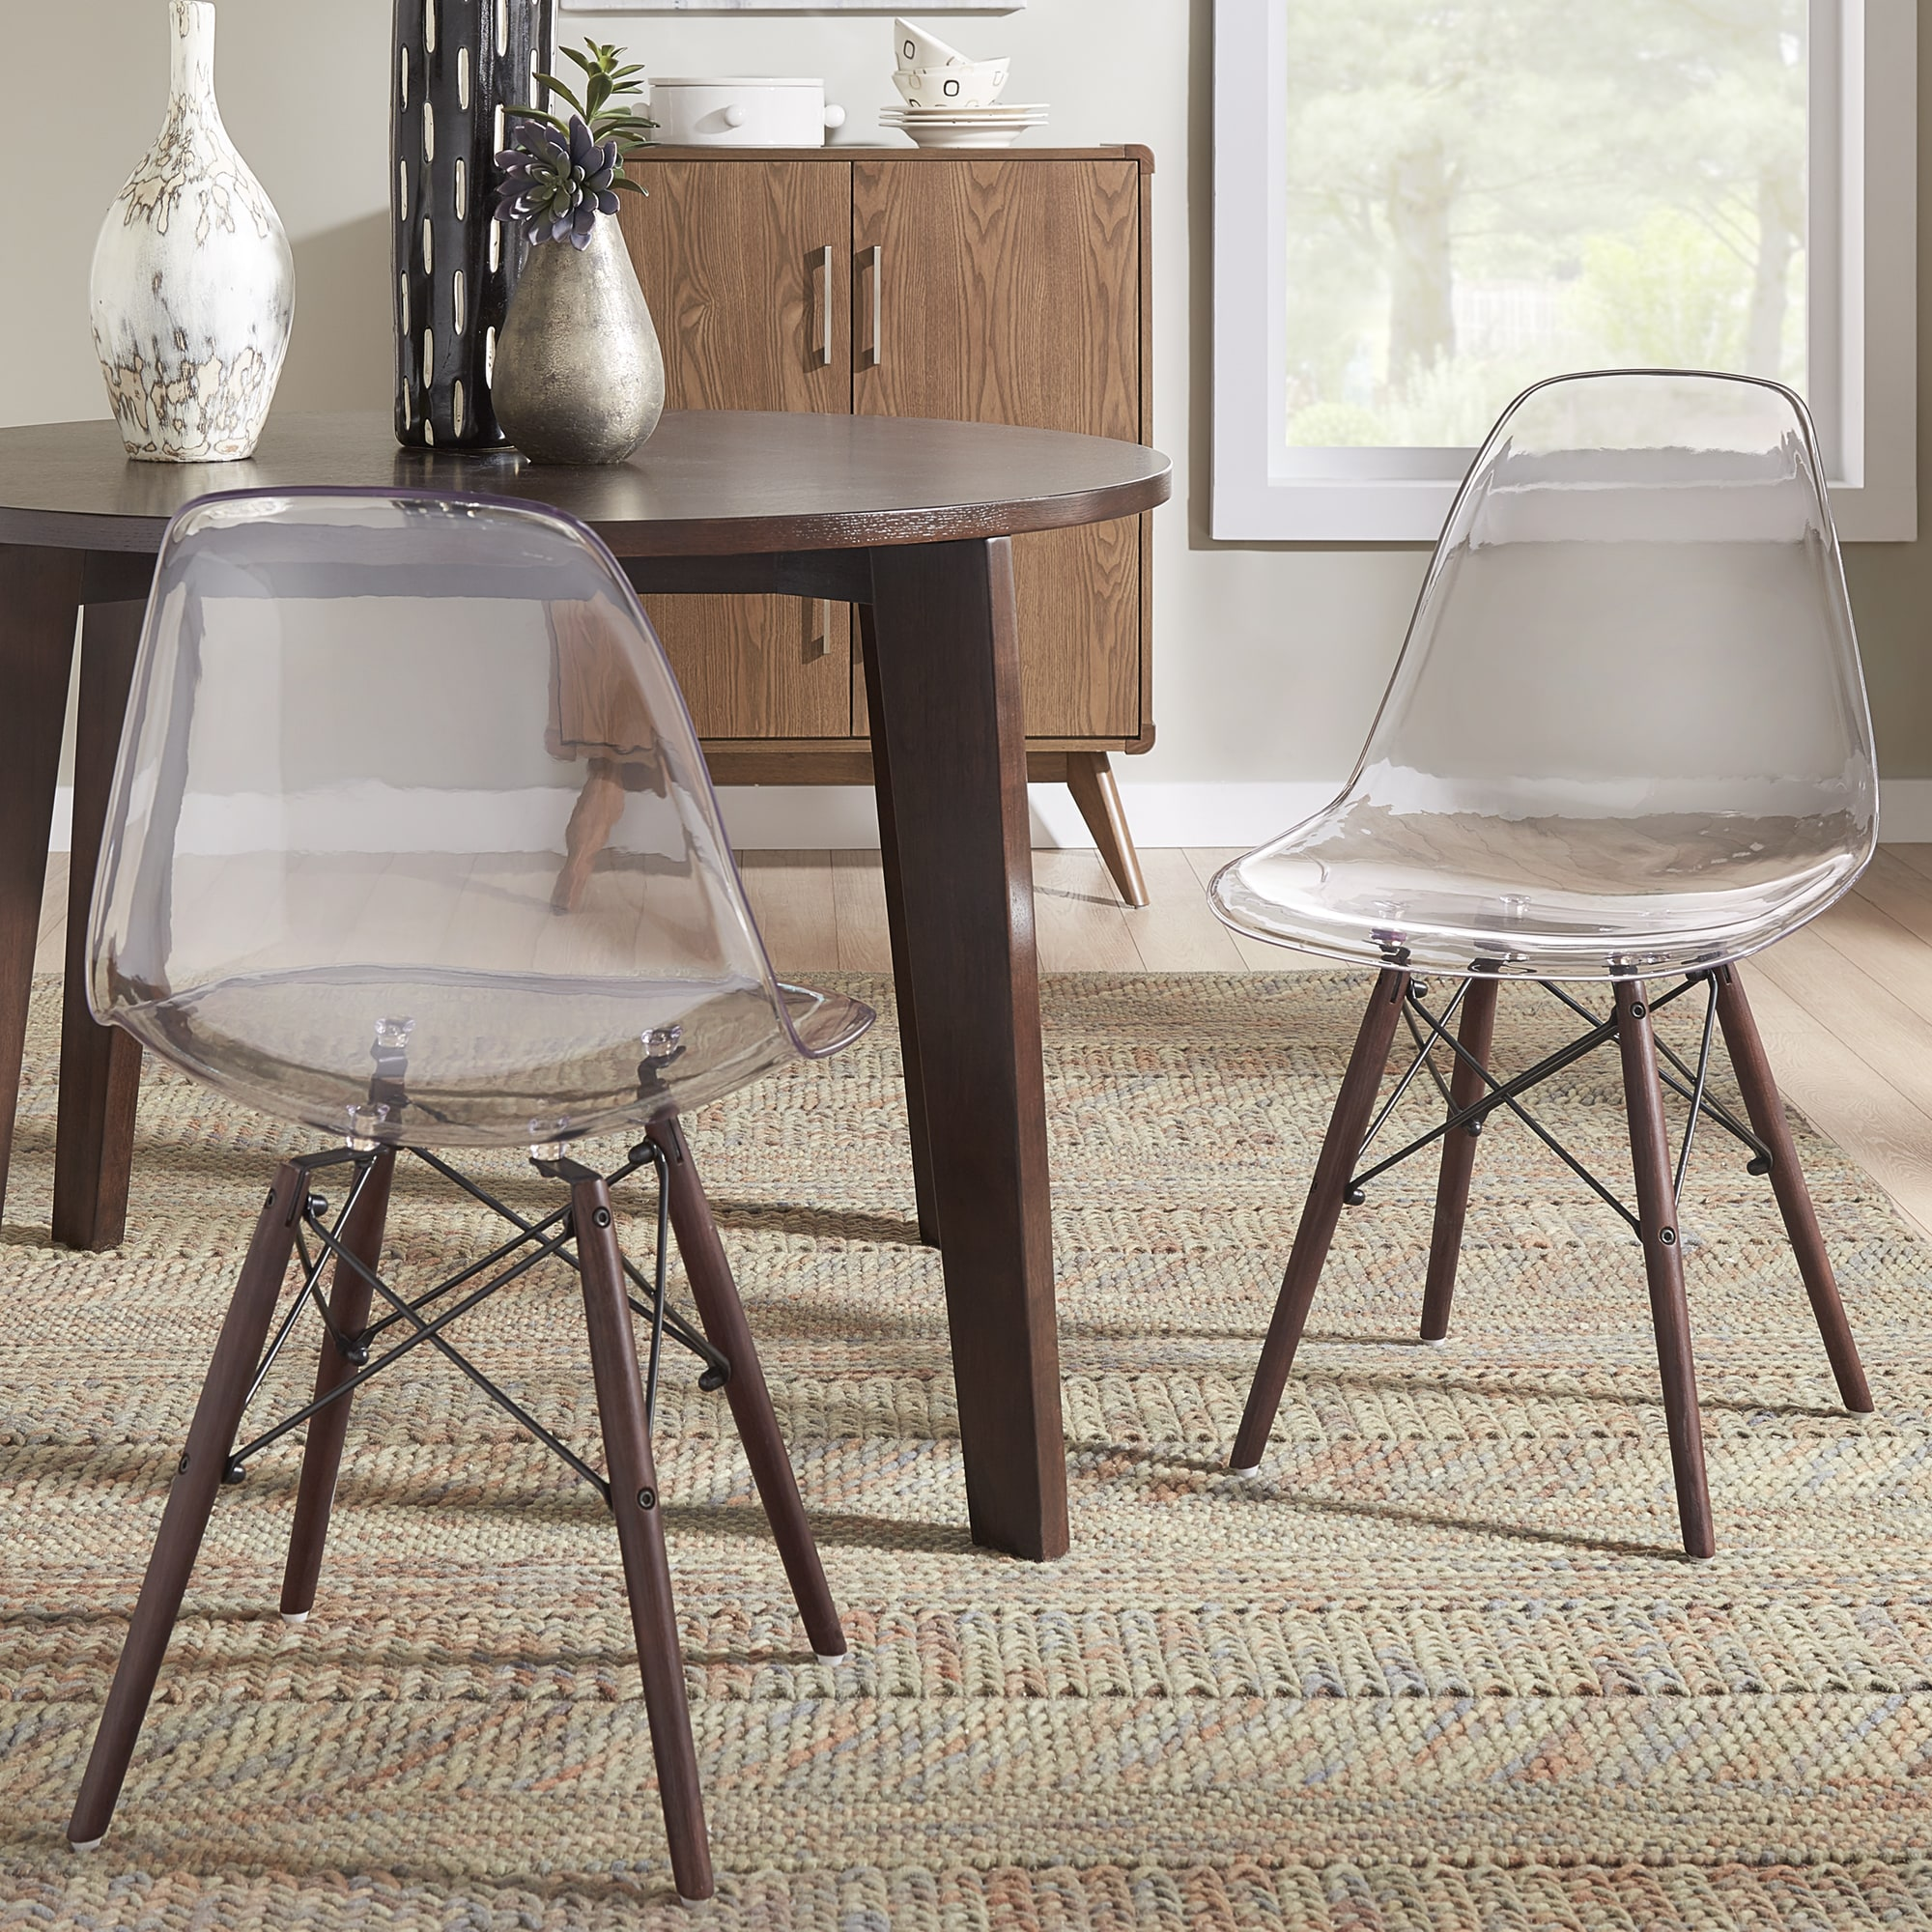 Buy Kitchen U0026 Dining Room Chairs Online At Overstock.com | Our Best Dining  Room U0026 Bar Furniture Deals